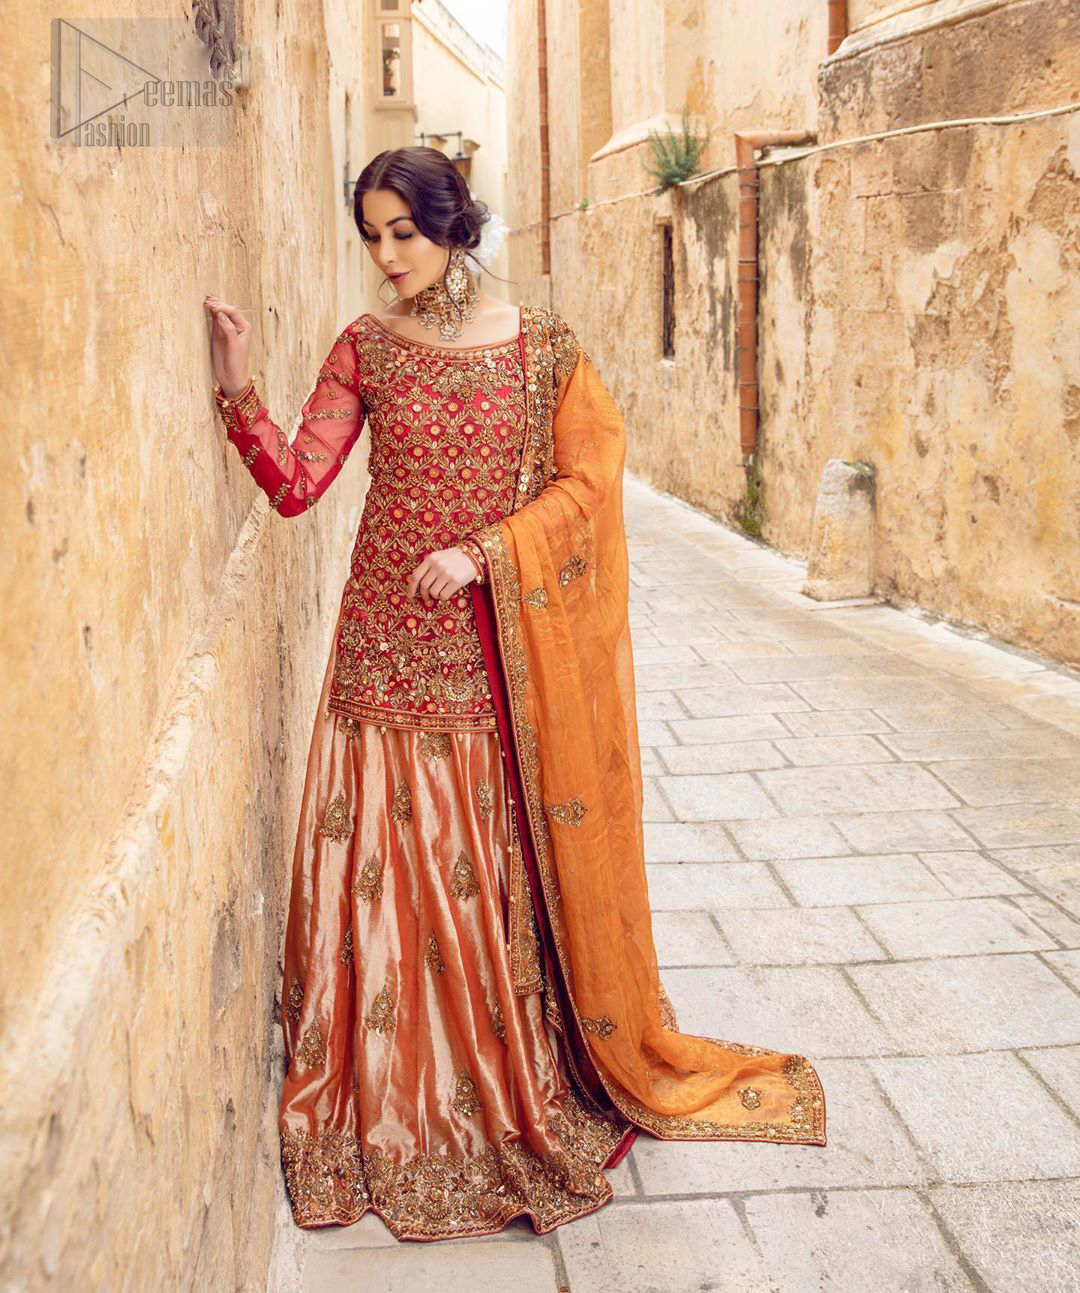 Make your big day more beautiful with our excessively embroidered back train lehenga shirt featuring delicately embellished neckline along with geometric patterns highlighted in antique shaded embroidery detailing and intricately embroidered borders that gives perfect ending to this outfit. Pair it up with a breathtaking back train lehenga with scattered motifs on the ground and embellished hemline. The orange organza dupatta with floral motifs and finishing all around the edges makes the look complete. The combination of orange with red is absolutely breathetaking.